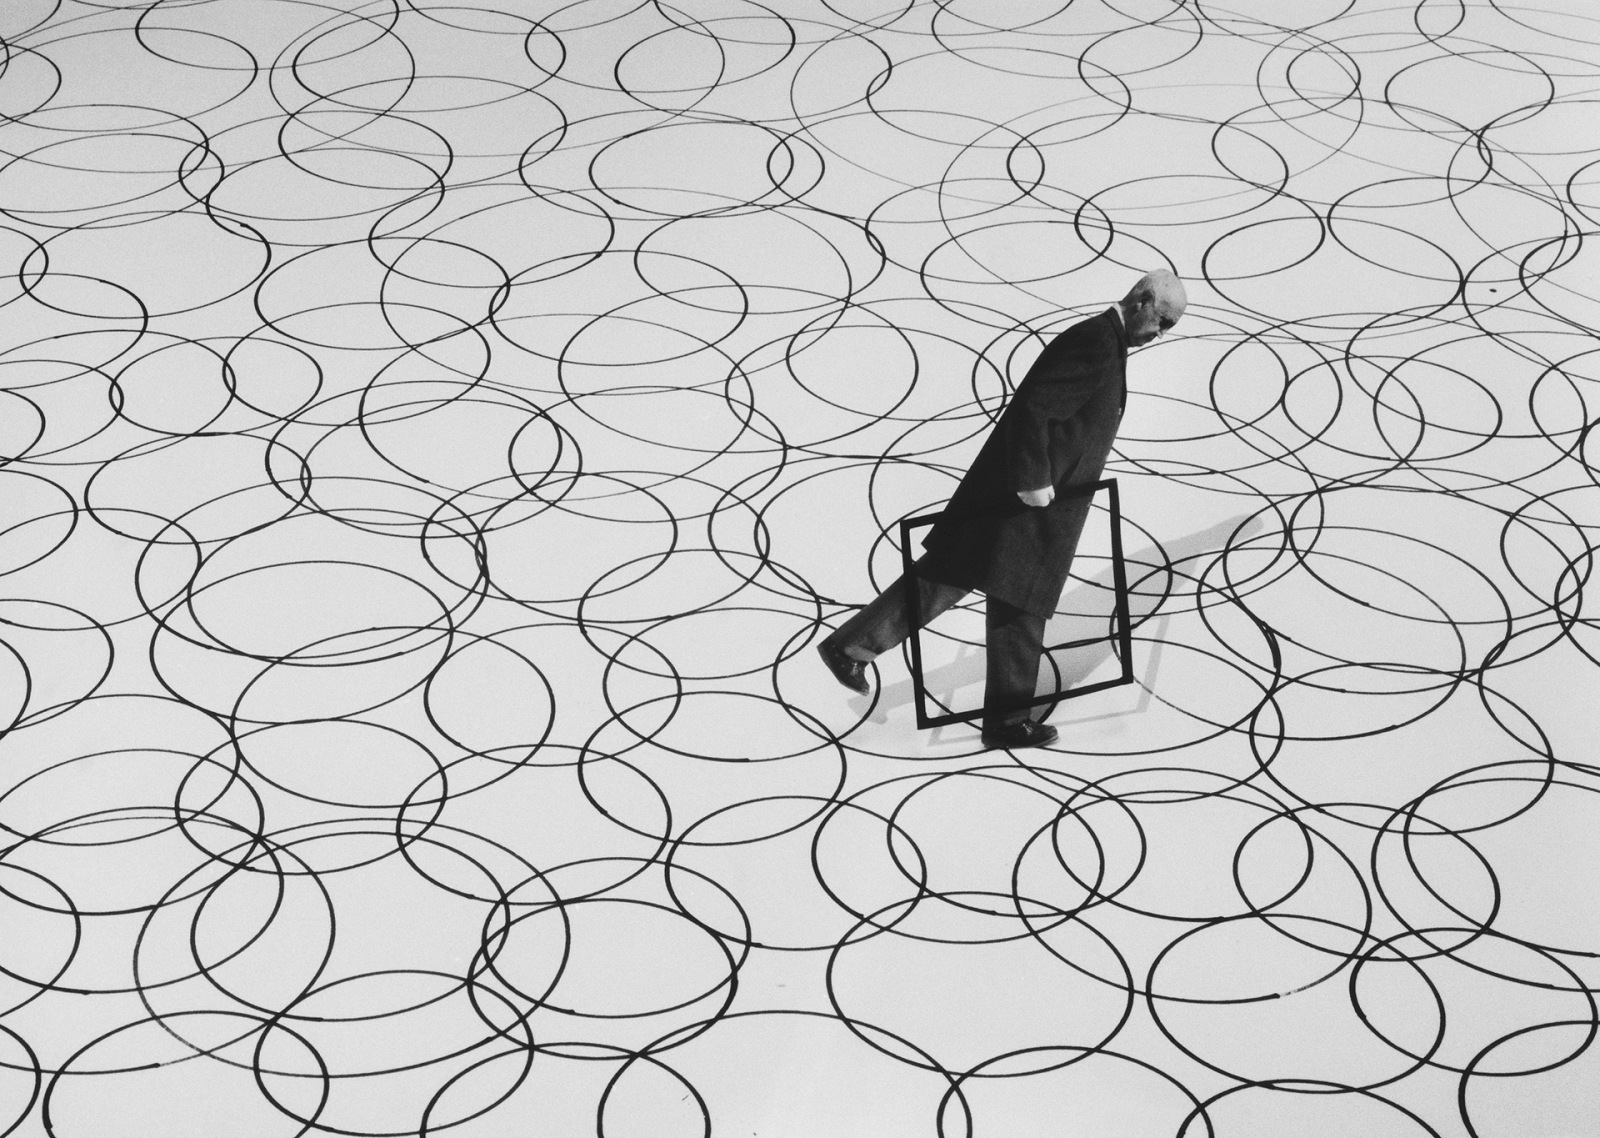 Gilbert,Garcin, La difference. © Gilbert Garcin.